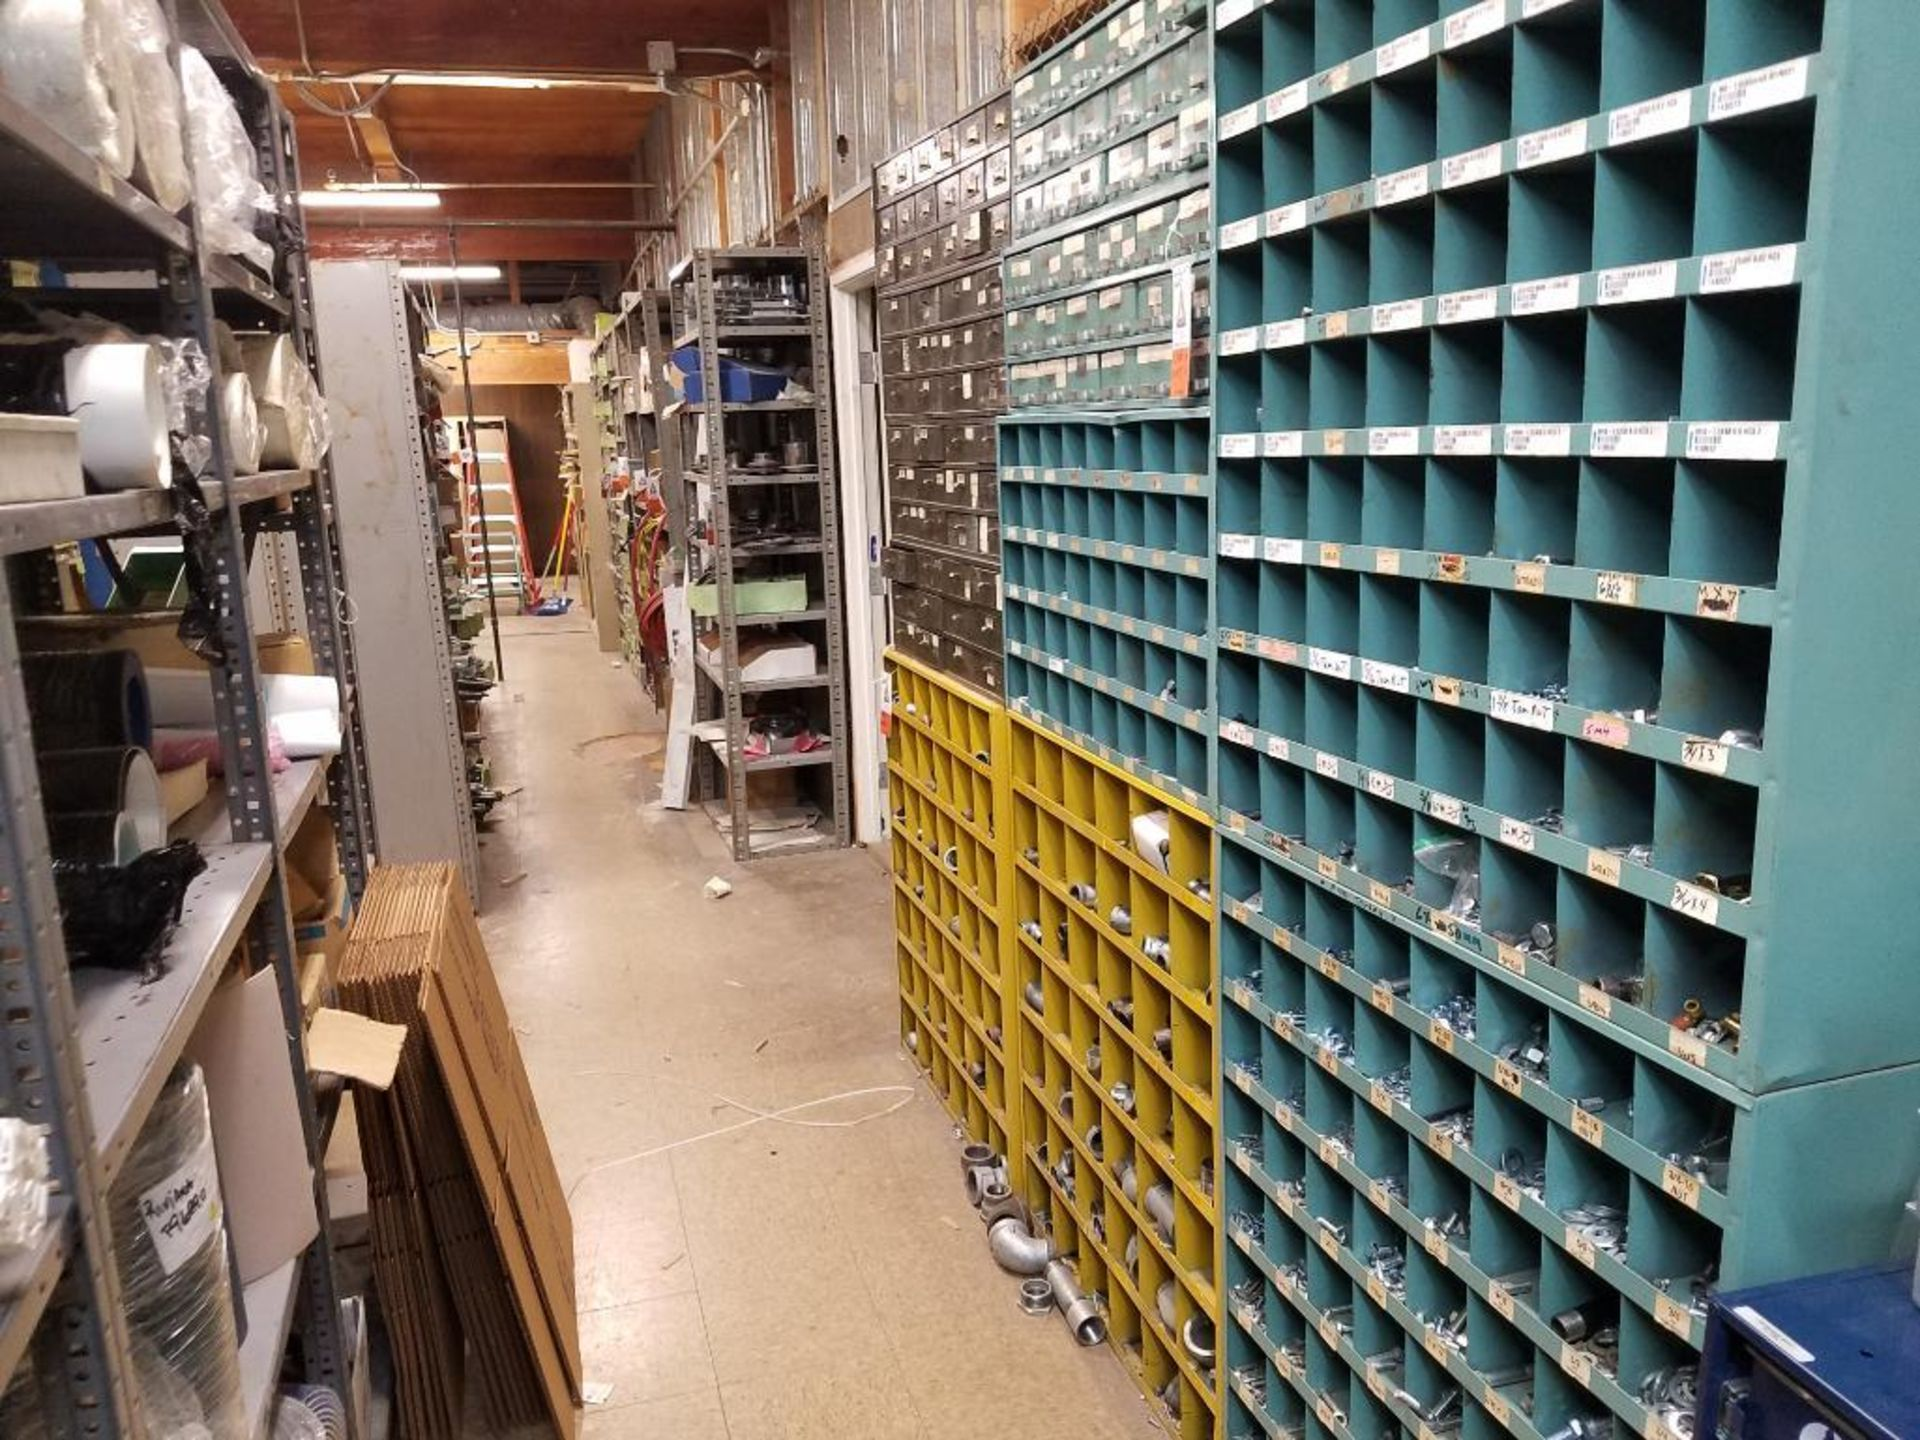 all shelving and storage units located in MRO room - Image 8 of 11